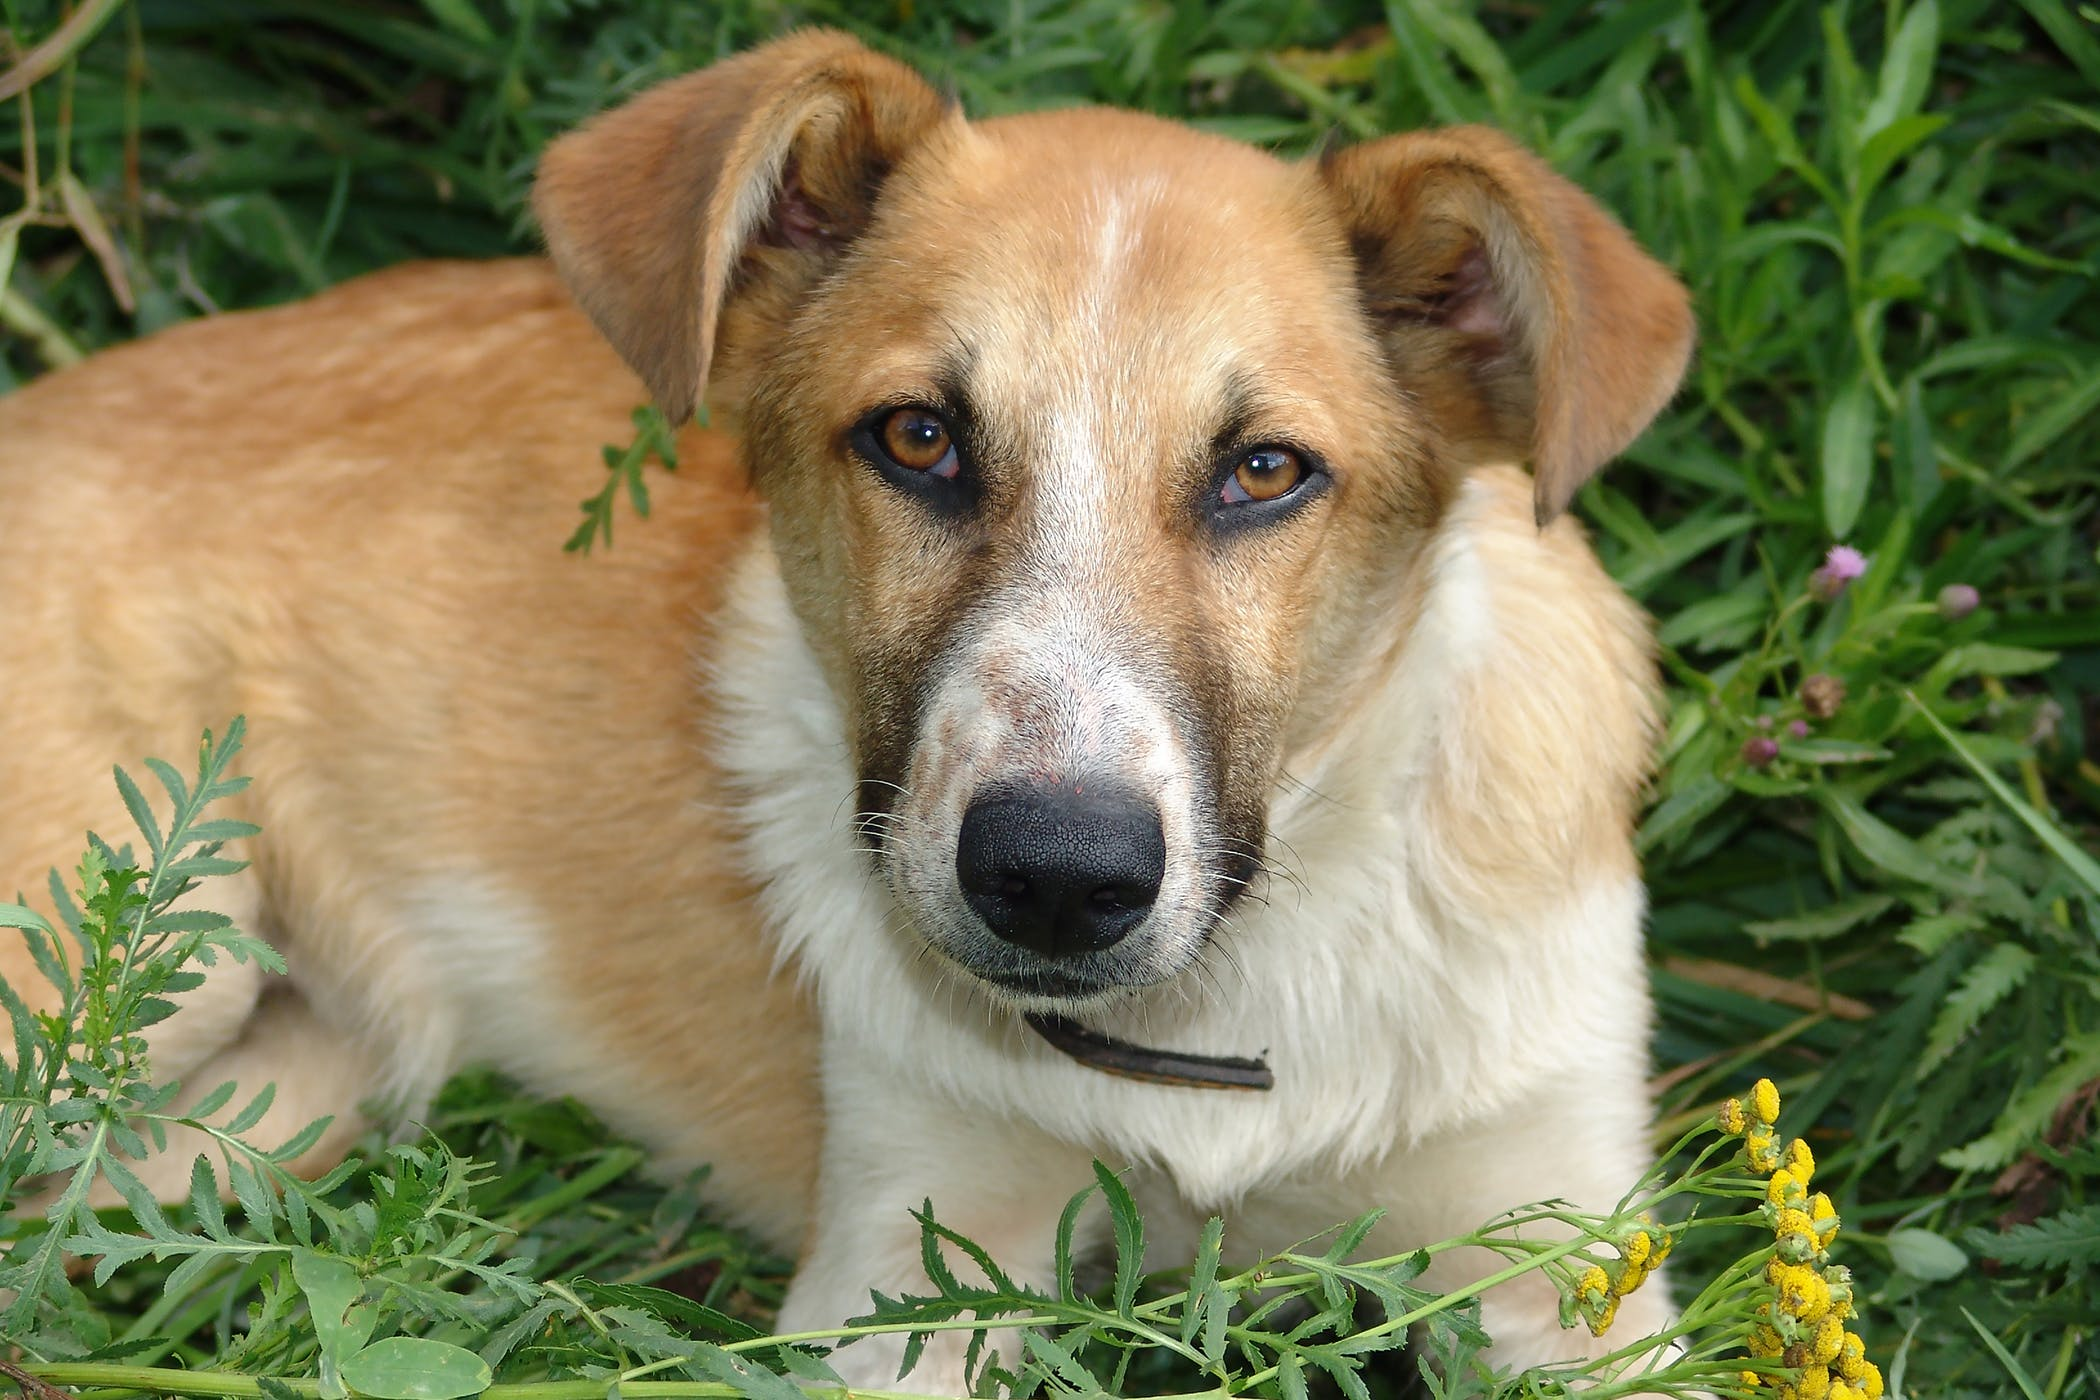 Inflammation of the Mouth in Dogs - Symptoms, Causes, Diagnosis